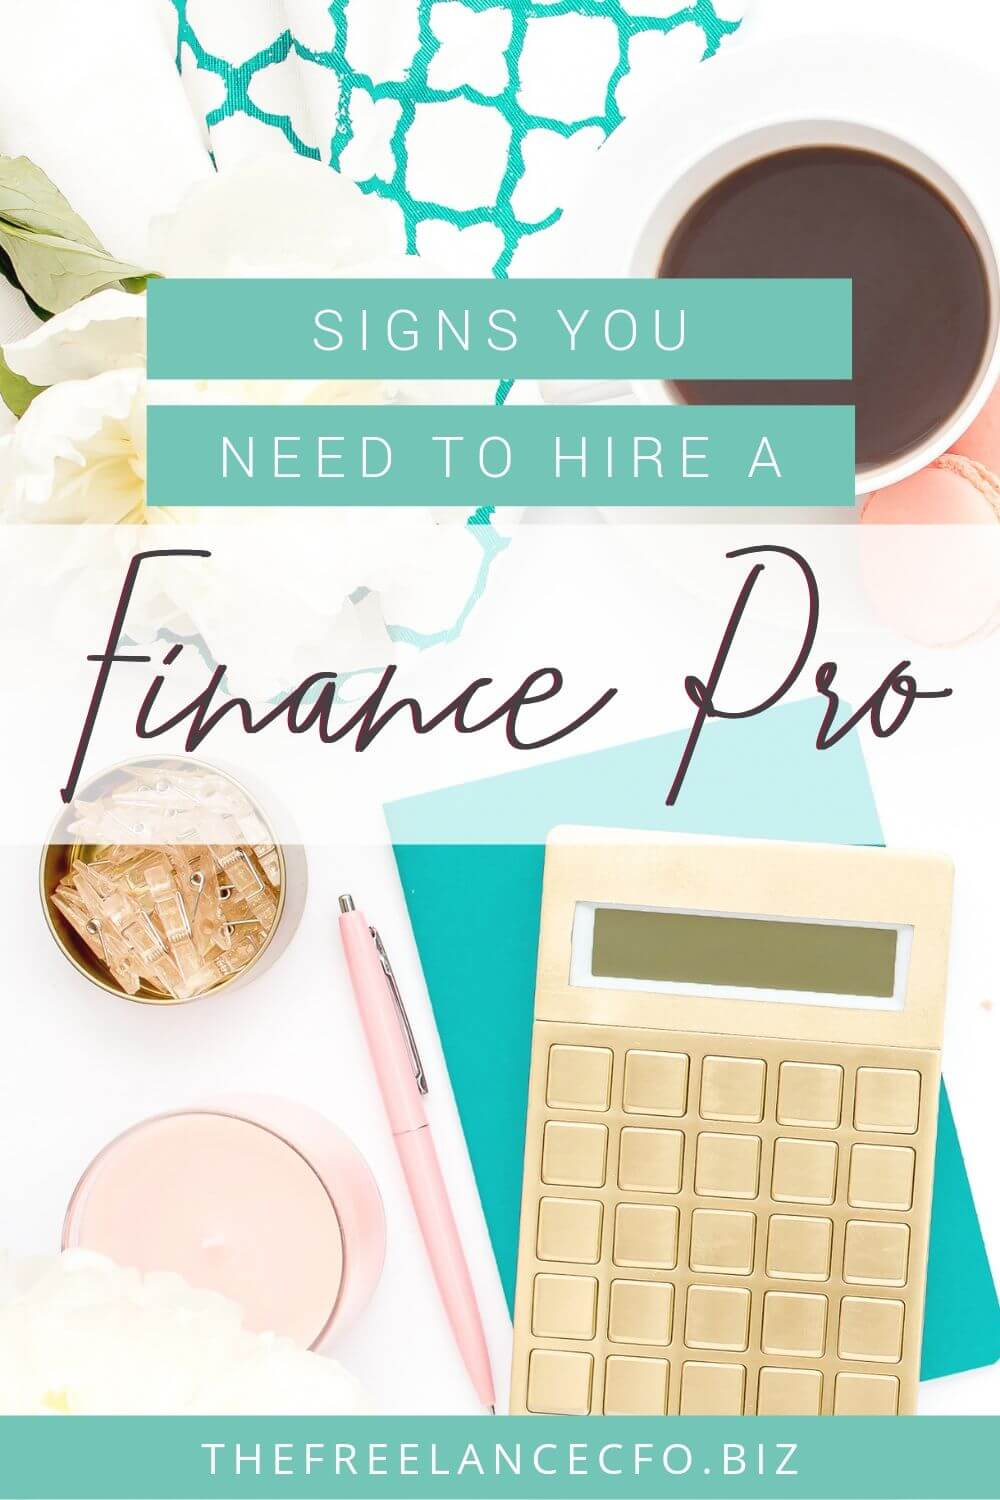 If you're a freelancer, there will always come a point in your business when it no longer makes sense to handle the bookkeeping yourself. Why? Because your time is more valuable than that. But more than that, you need to think about these key things - click to learn more!